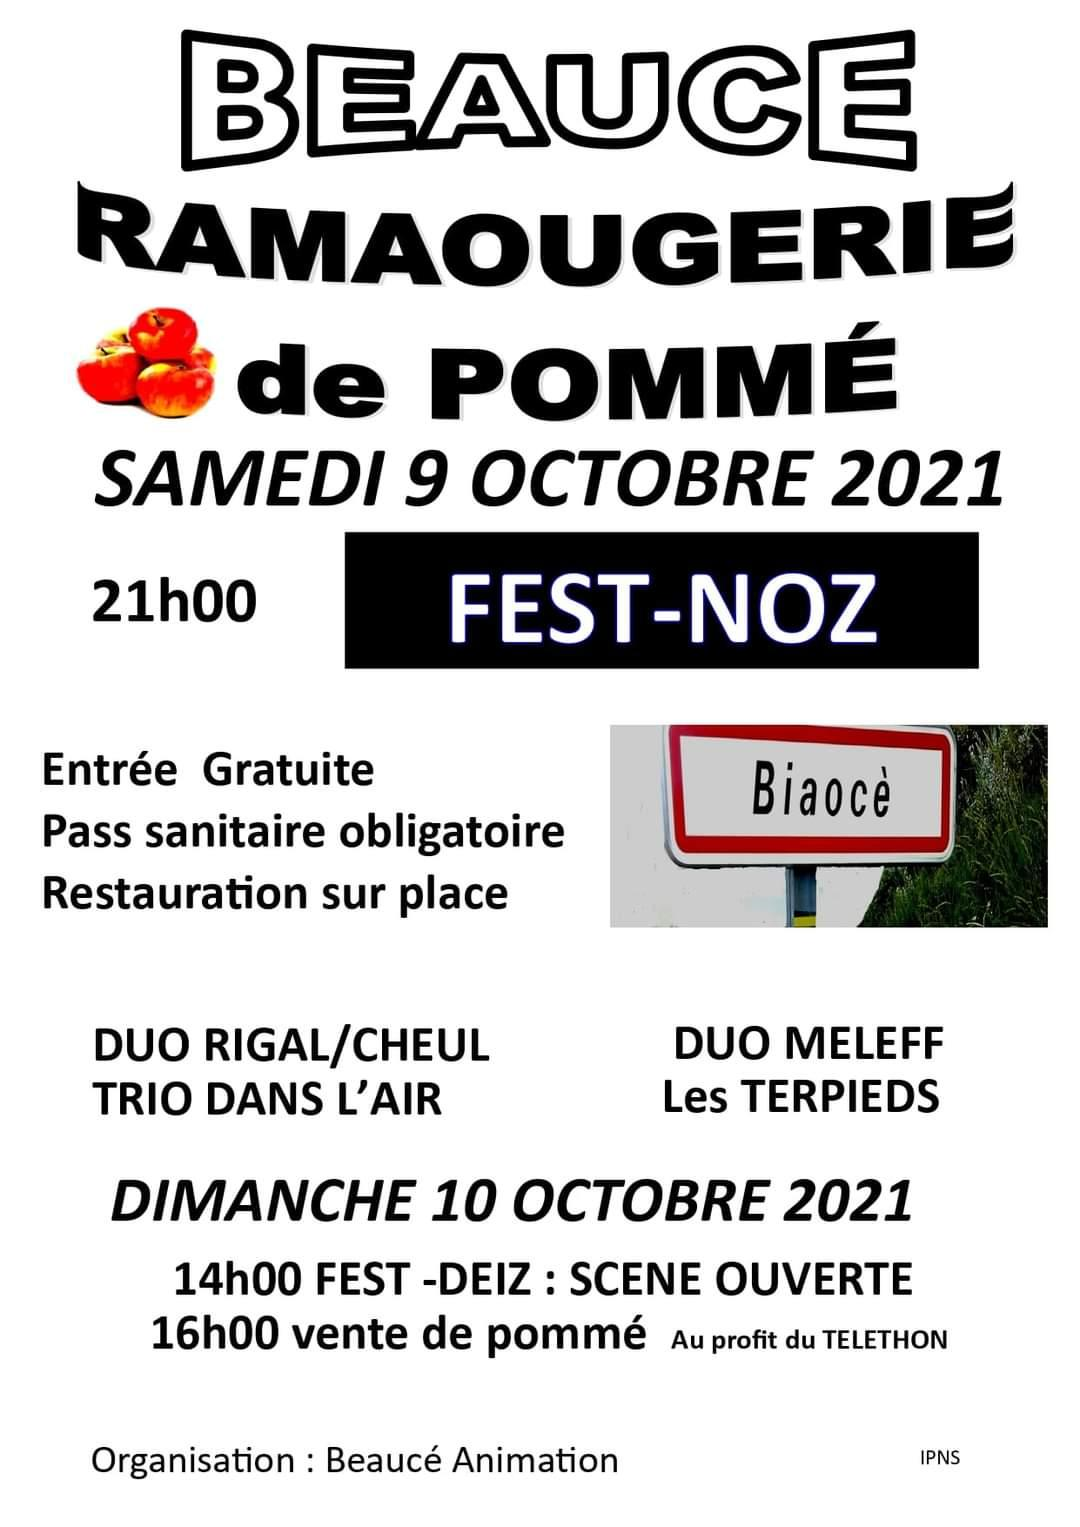 Ramaougerie 2021